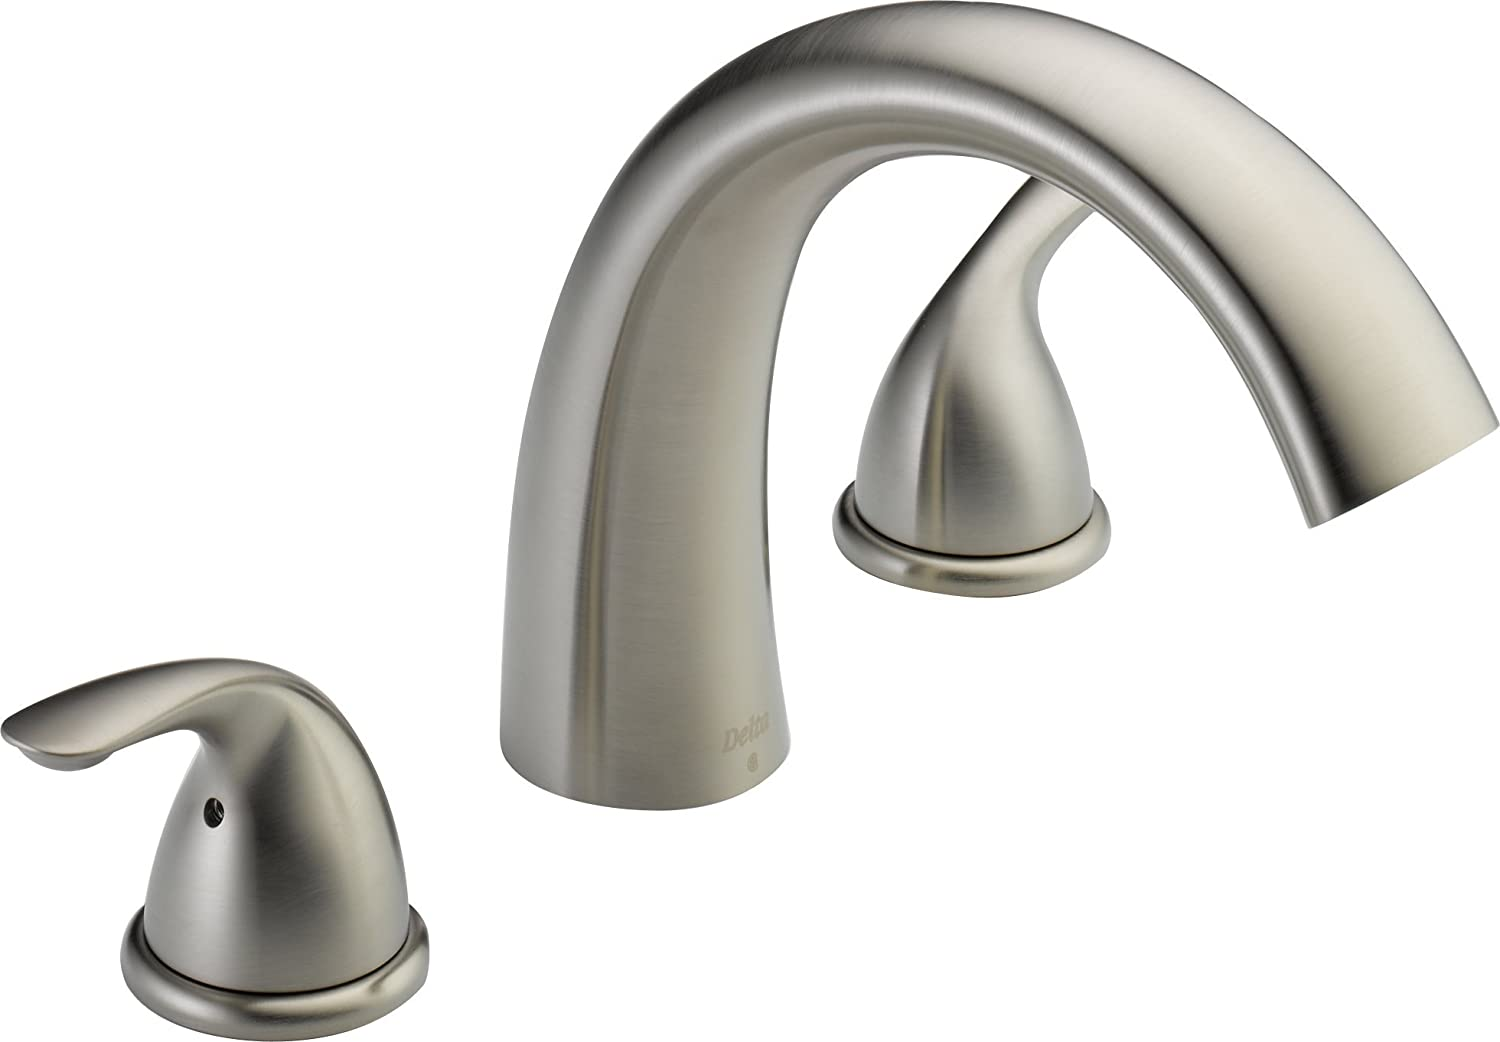 Delta T2705 Roman Tub Trim, Stainless (Valve sold separately)